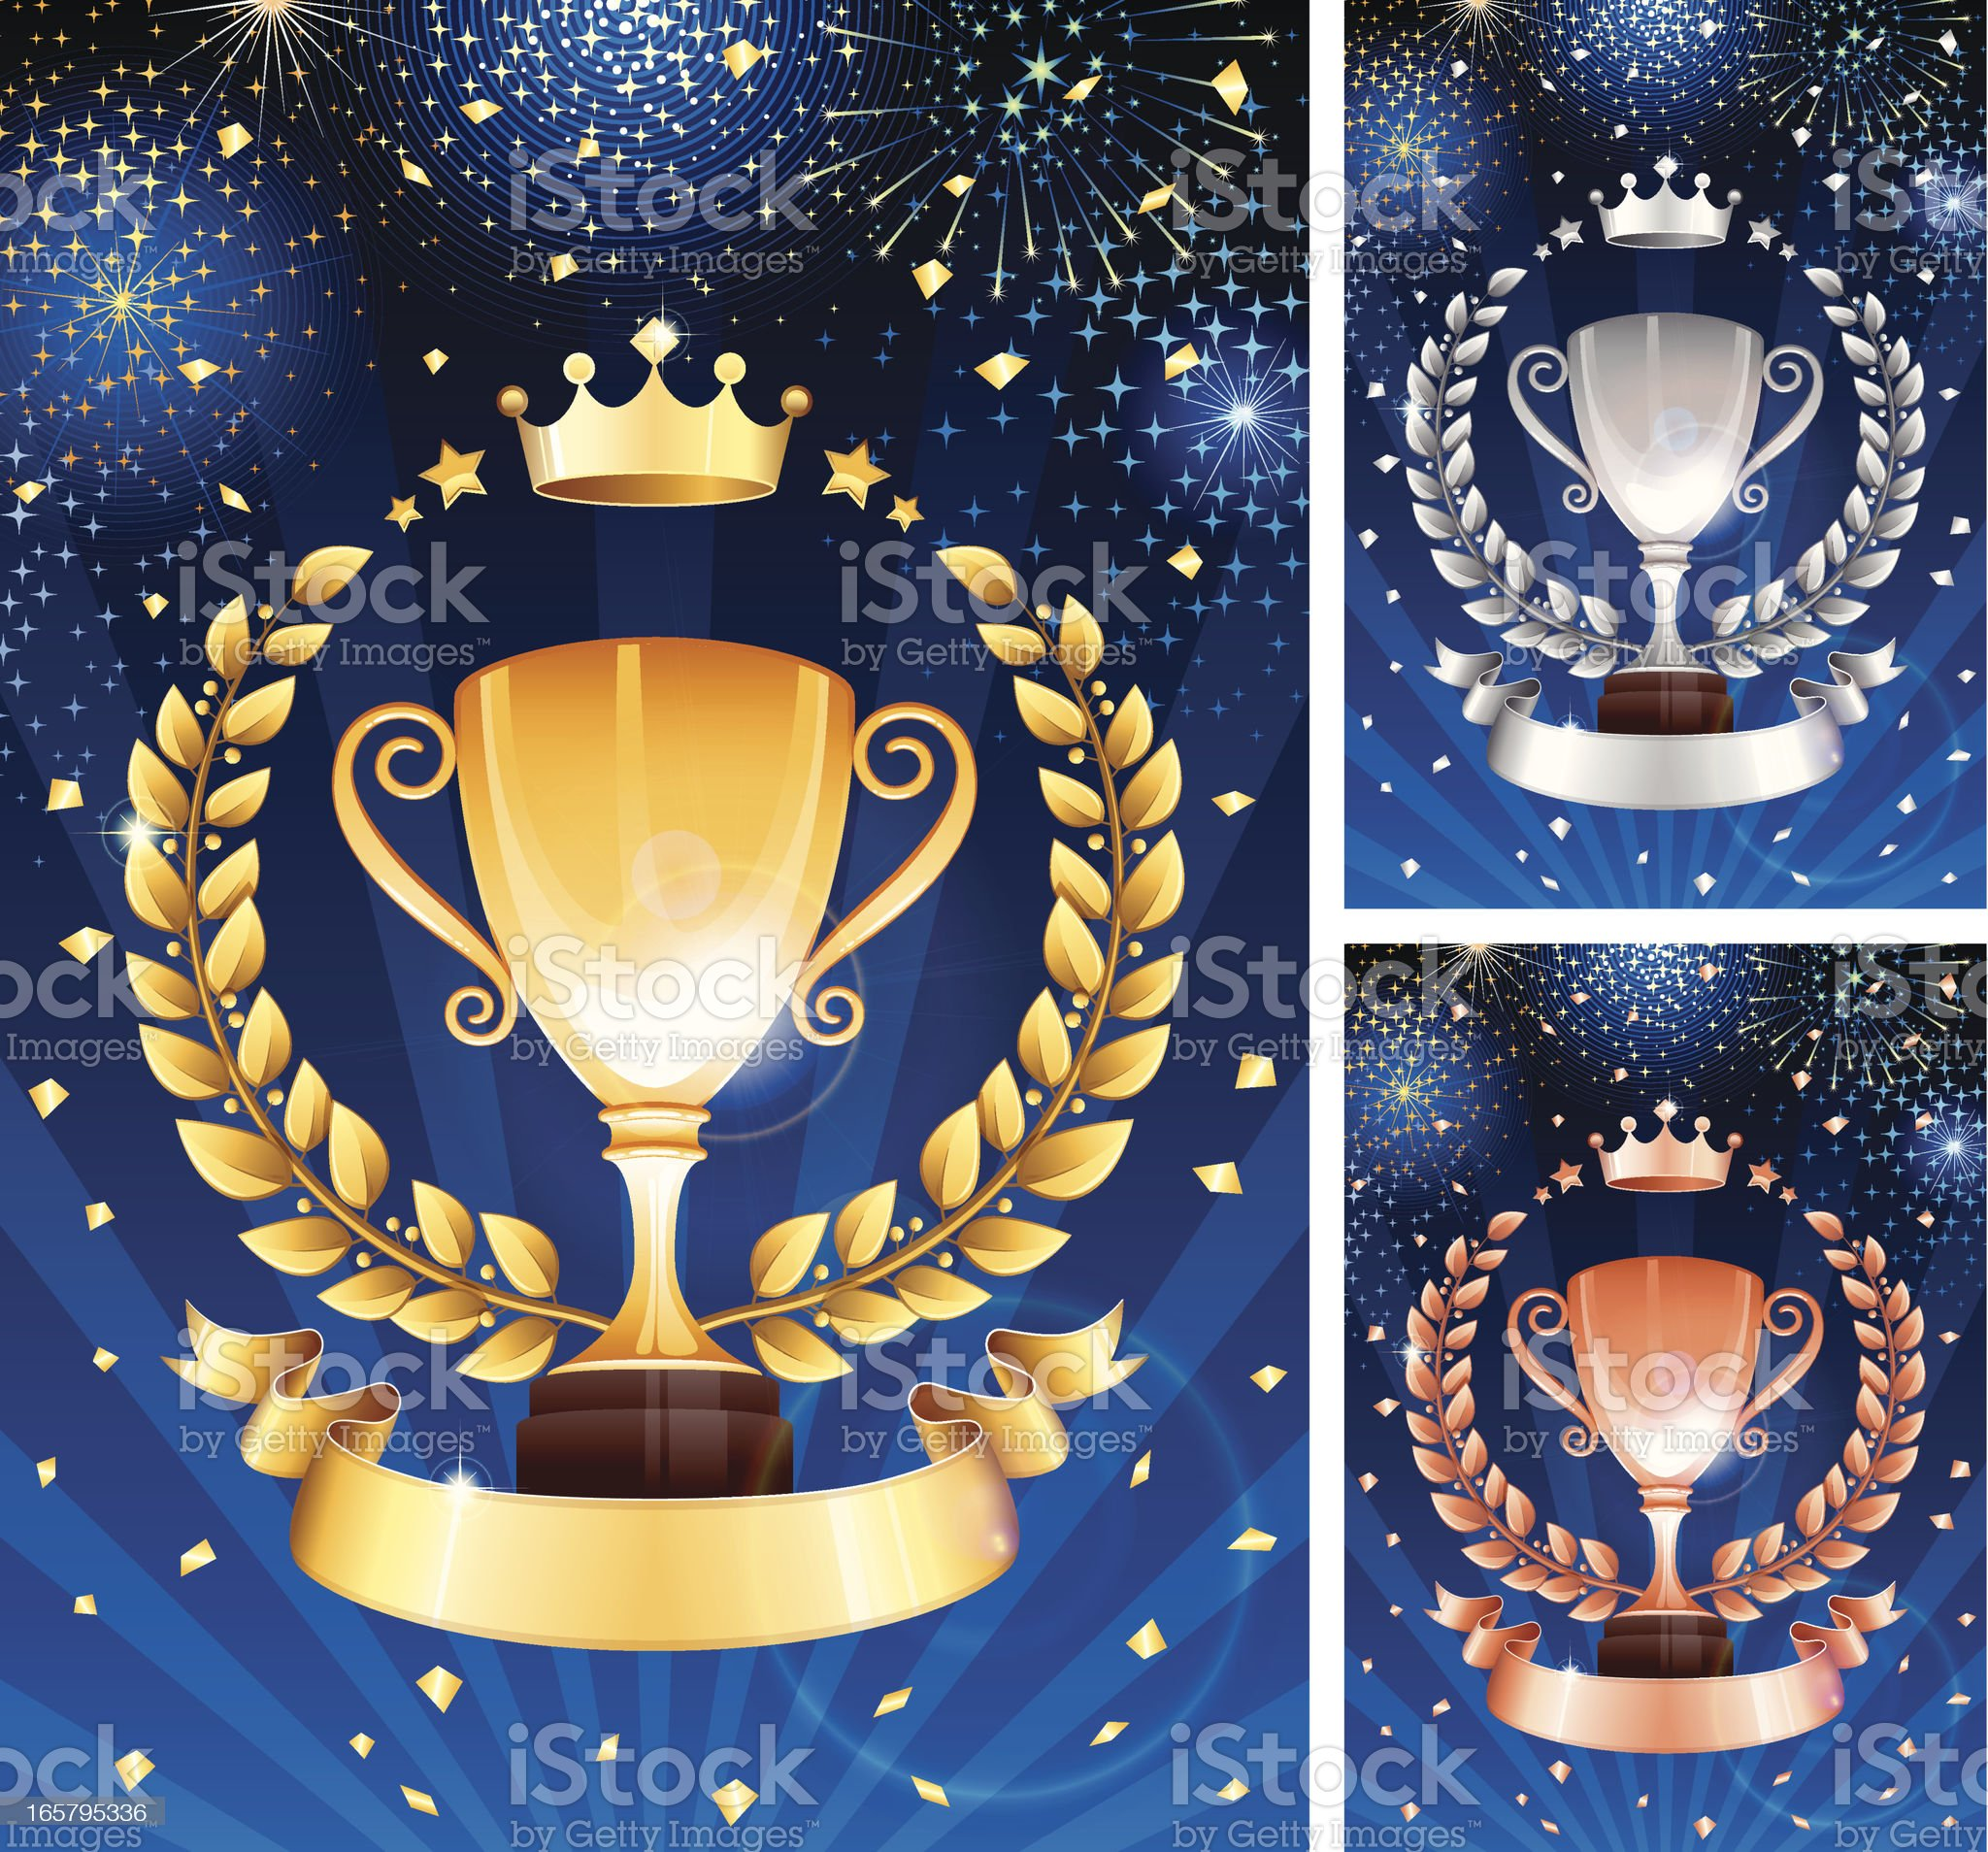 Gold, silver and bronze trophy celebration royalty-free stock vector art